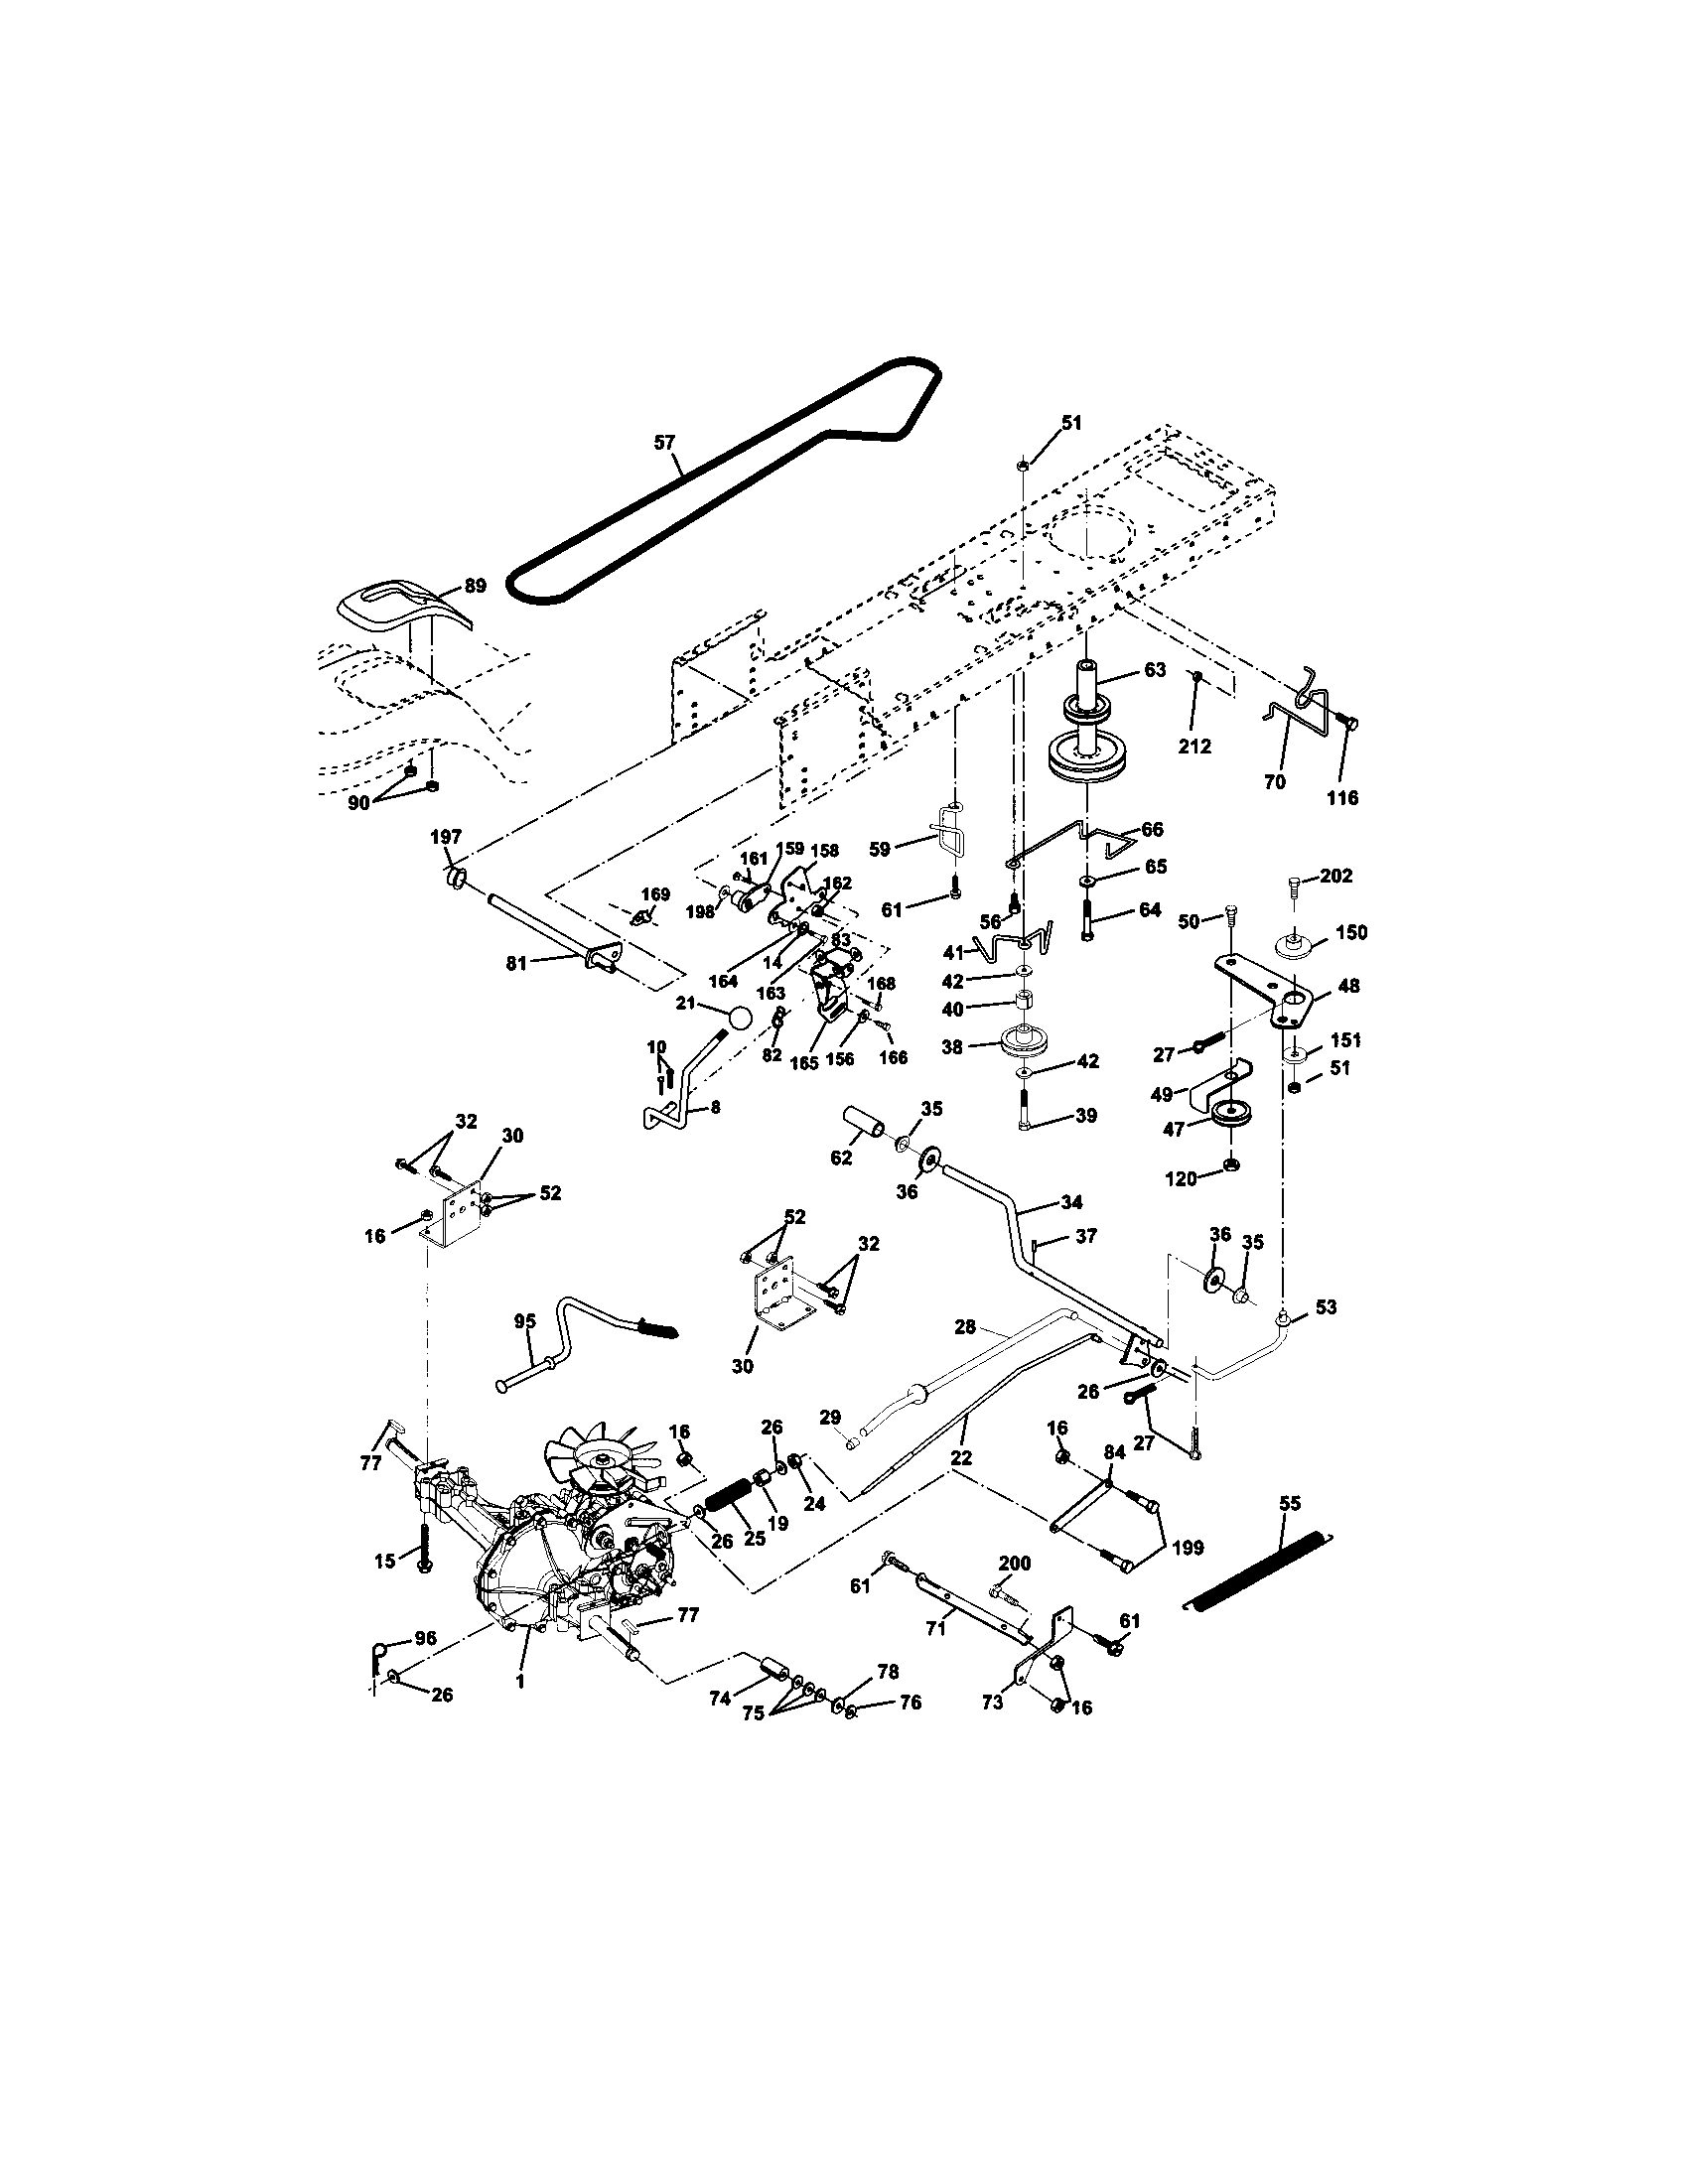 Wiring Diagram For Craftsman Gt5000, Wiring, Free Engine